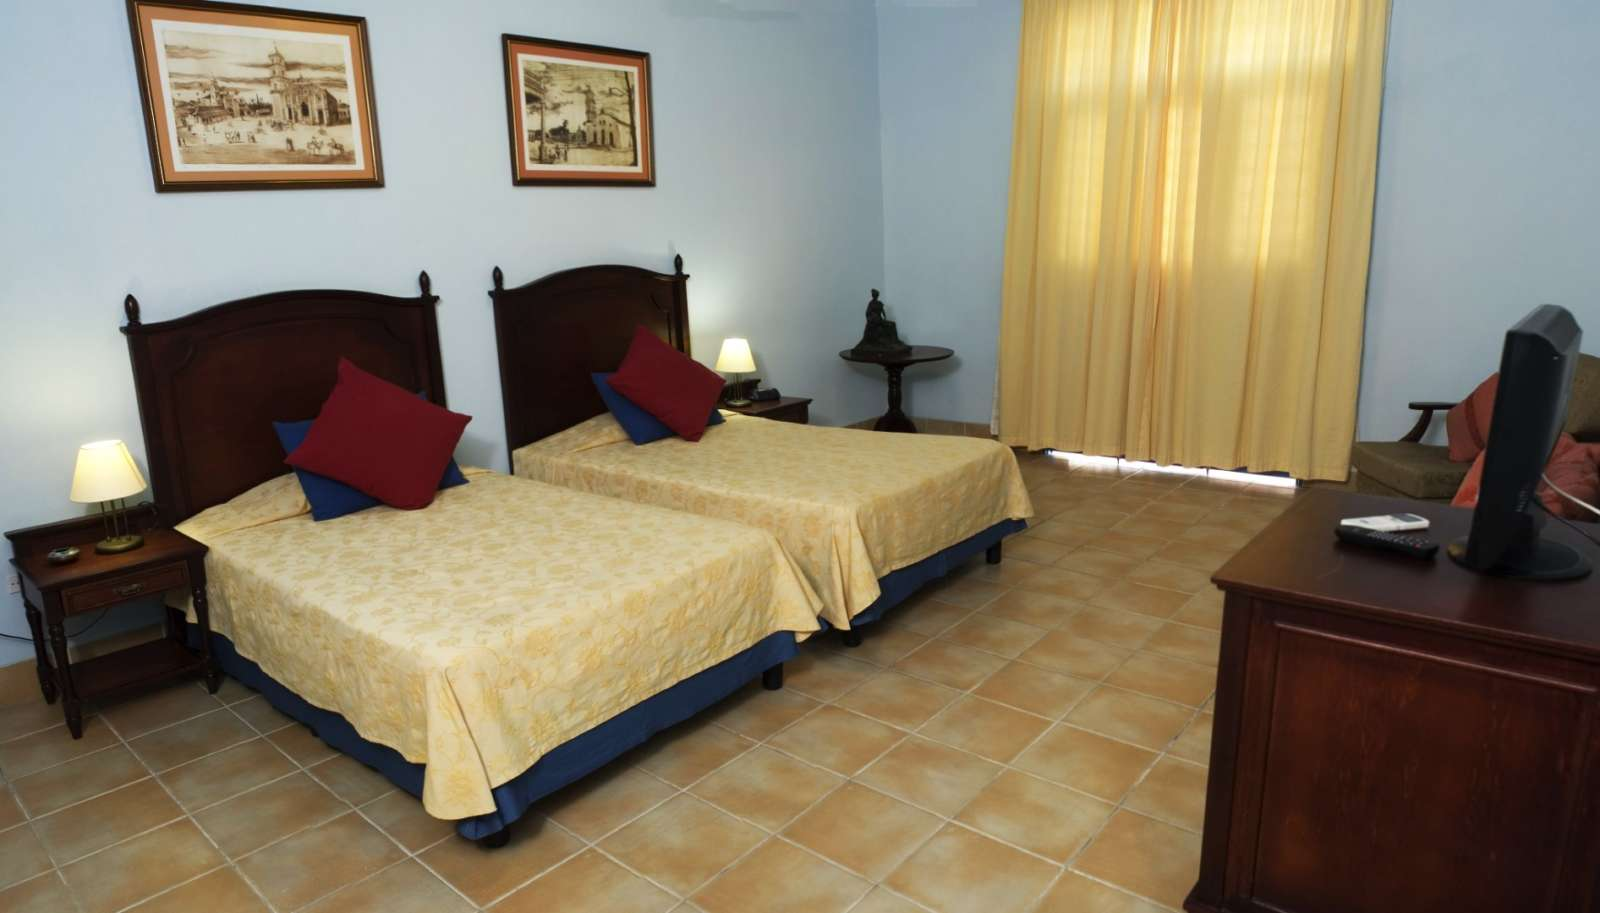 Room at Hotel Mascotte in Remedios